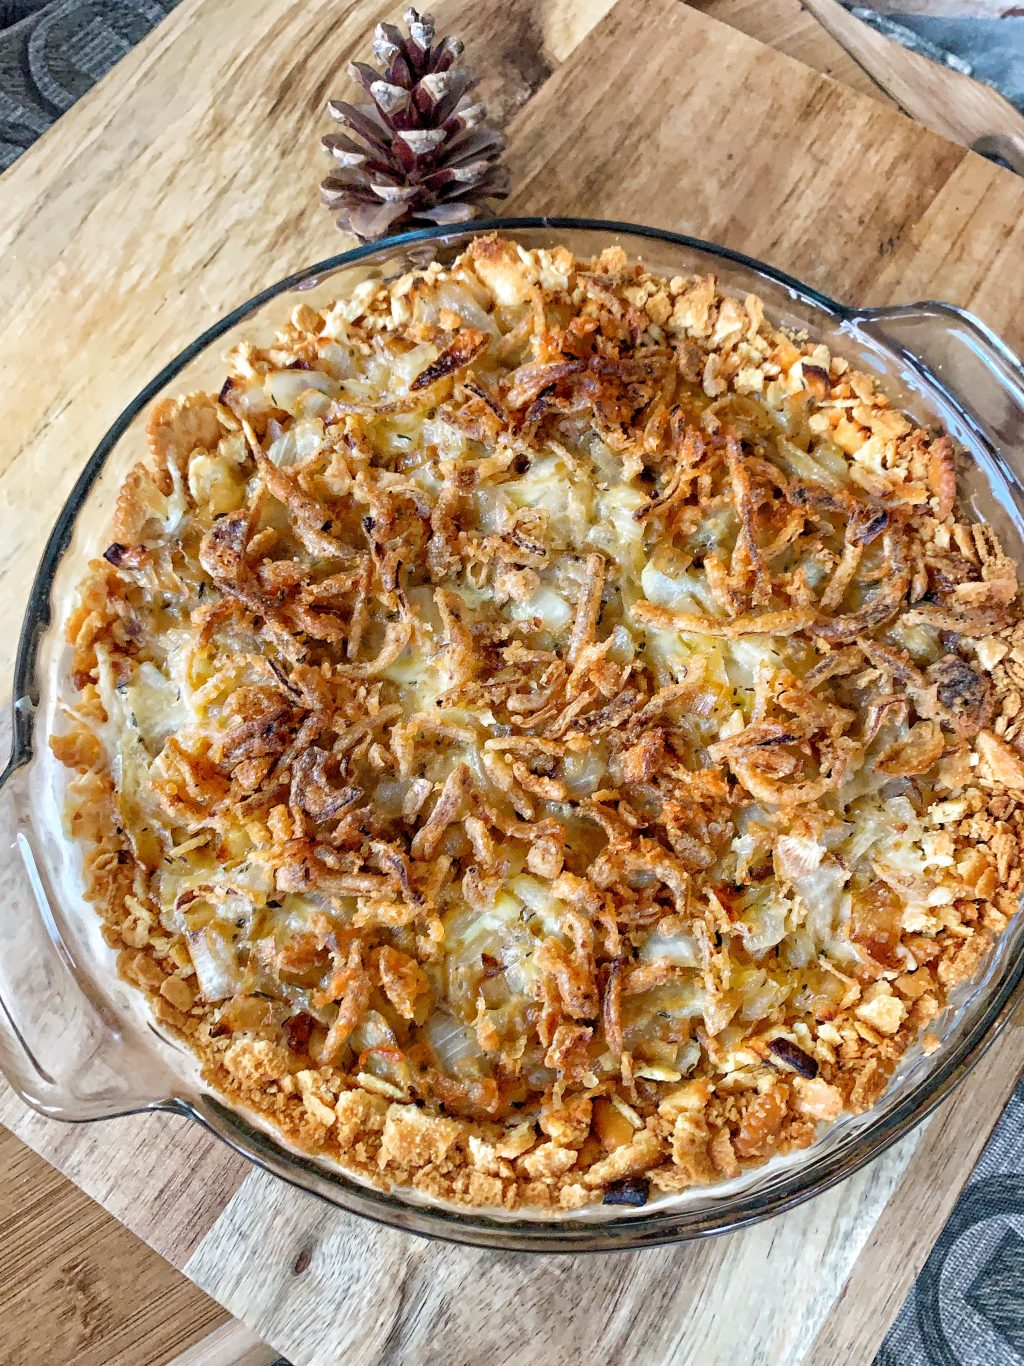 Creamy onions with cheese and crispy french fried onions.